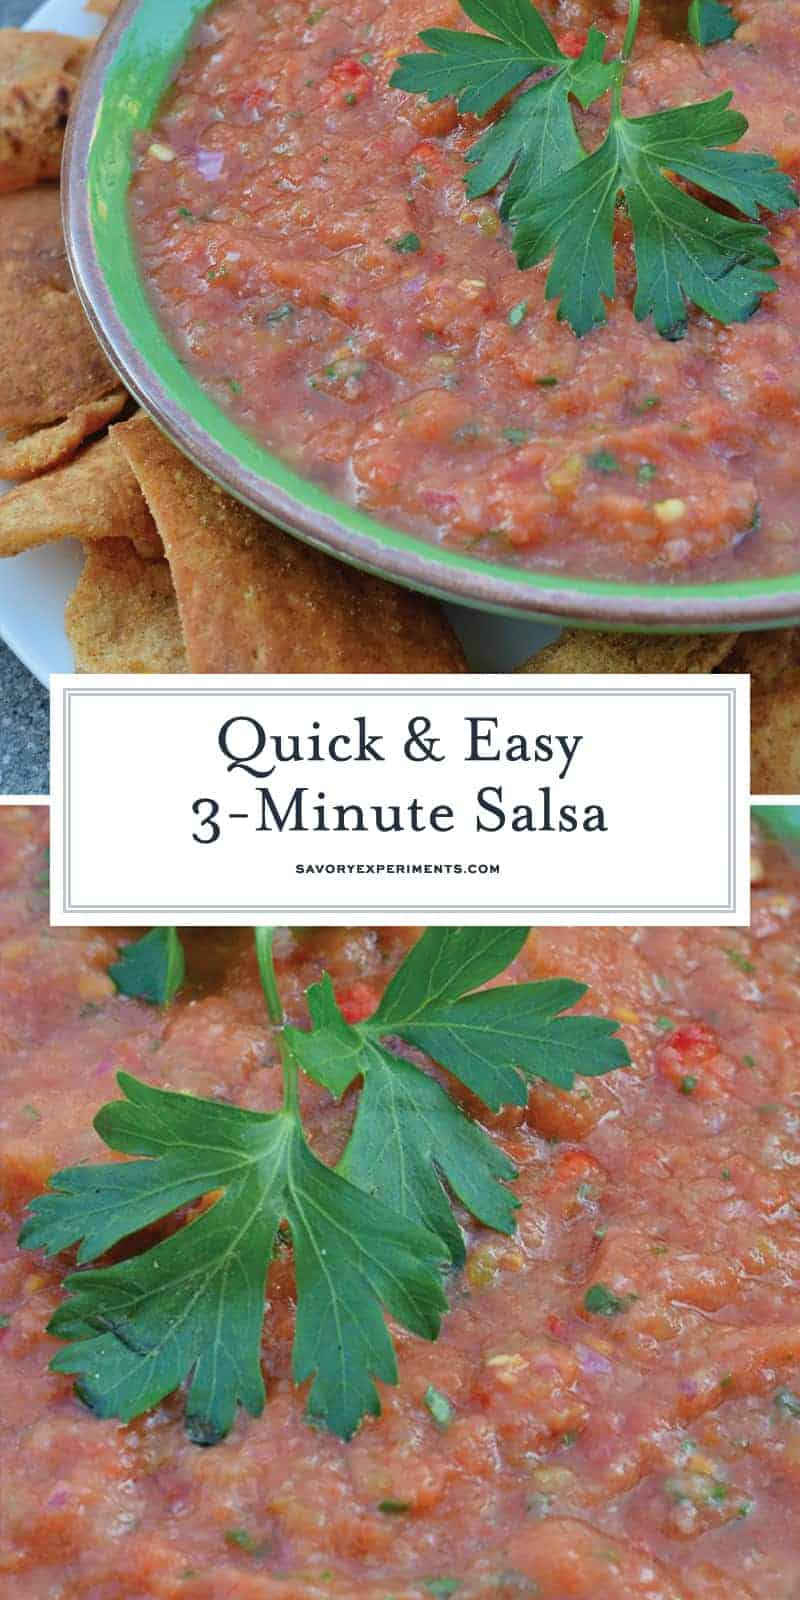 This easy Homemade Salsa recipe is ready in just 3 minutes using a blender. A blend of tomatoes, jalapenos, garlic, onion, cilantro and green chile. #homemadesalsarecipe #salsa www.savoryexperiments.com